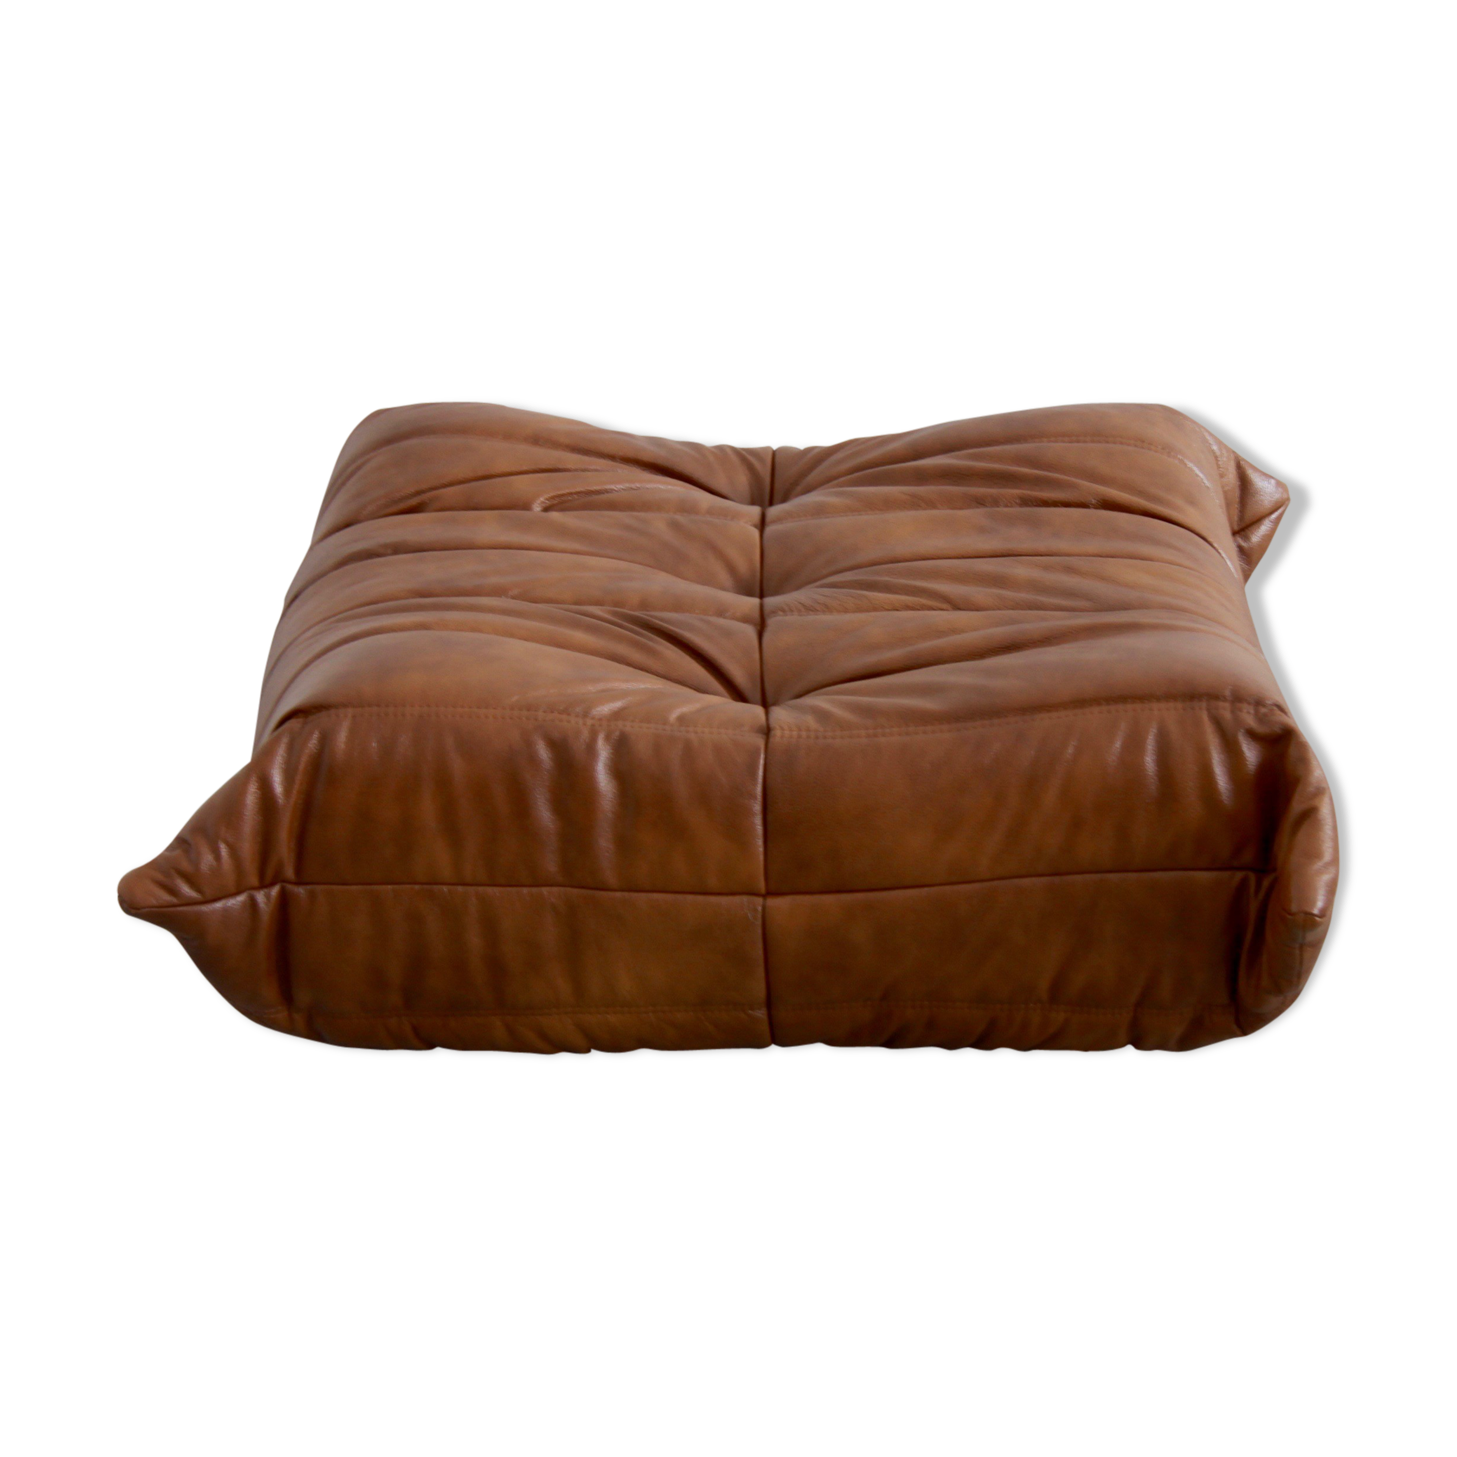 Ottoman Togo Leather By Michel Ducaroy For Ligne Roset Leather